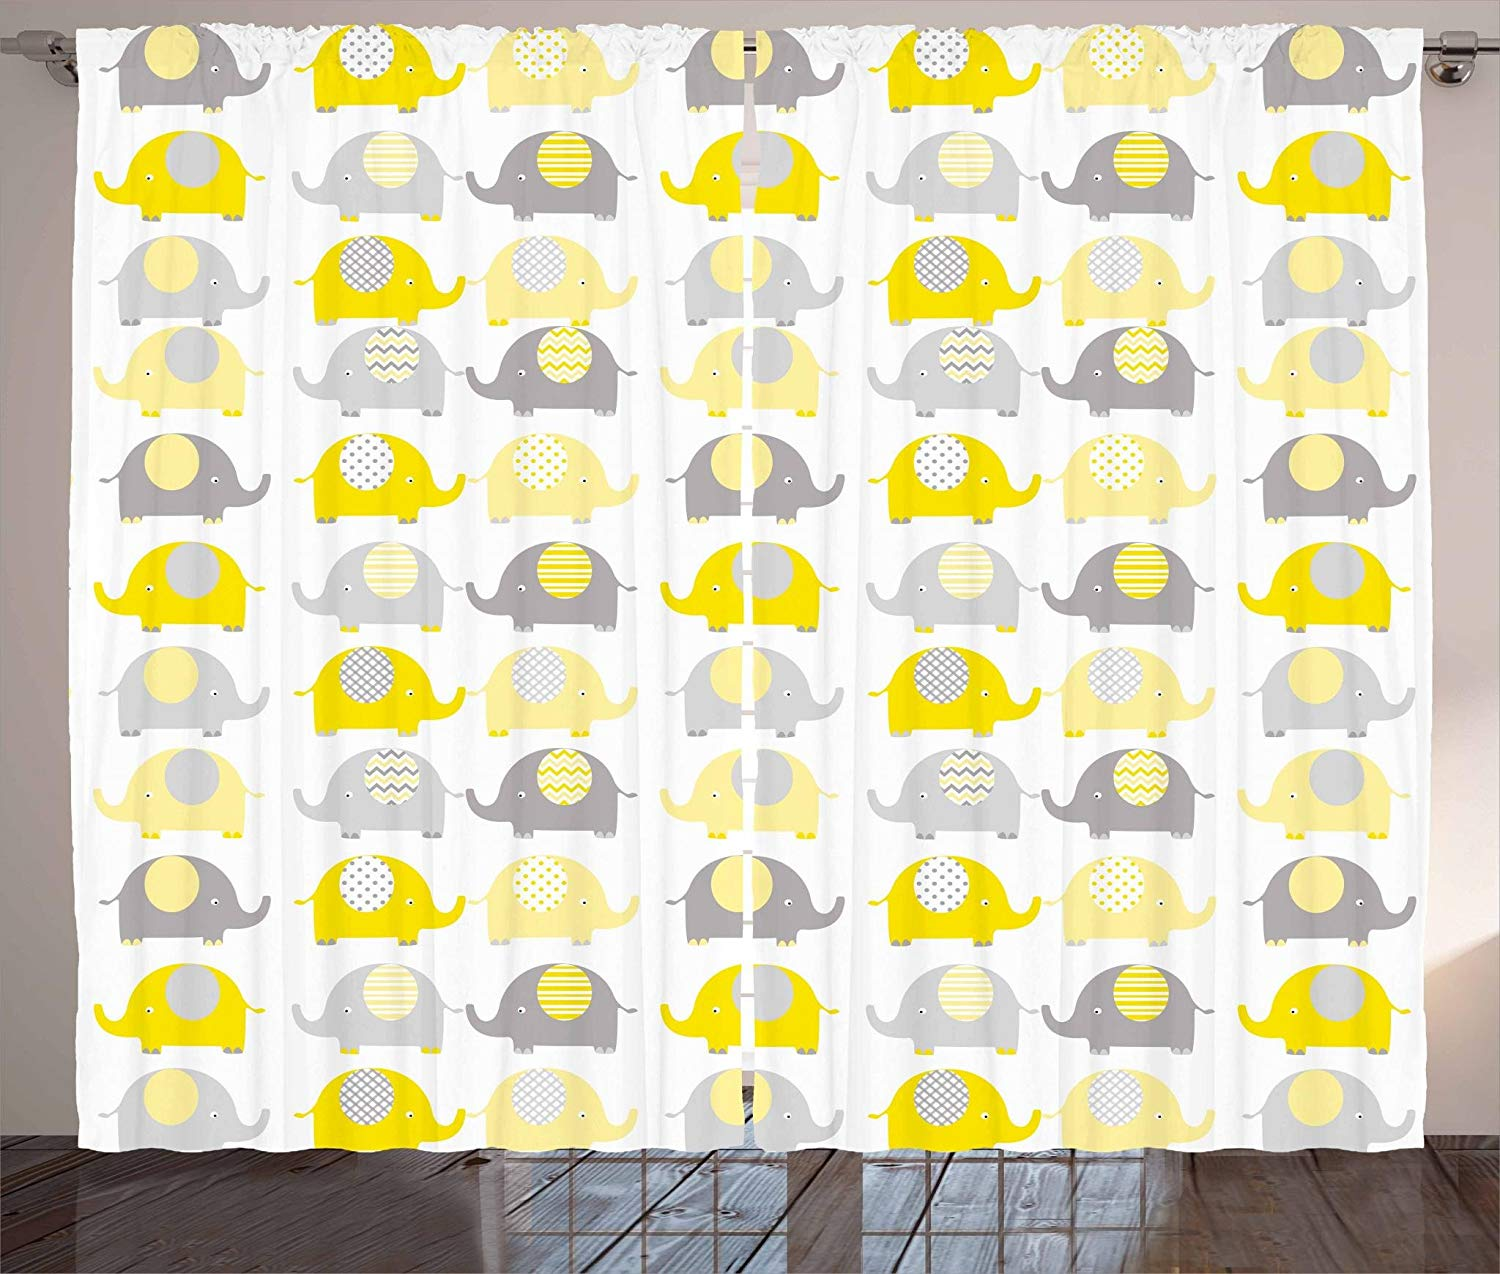 Nursery Curtains Yellow Grey Cute Elephant Cartoon Animals with Different Patterns Asia Fauna Living Room Bedroom Window Drapes